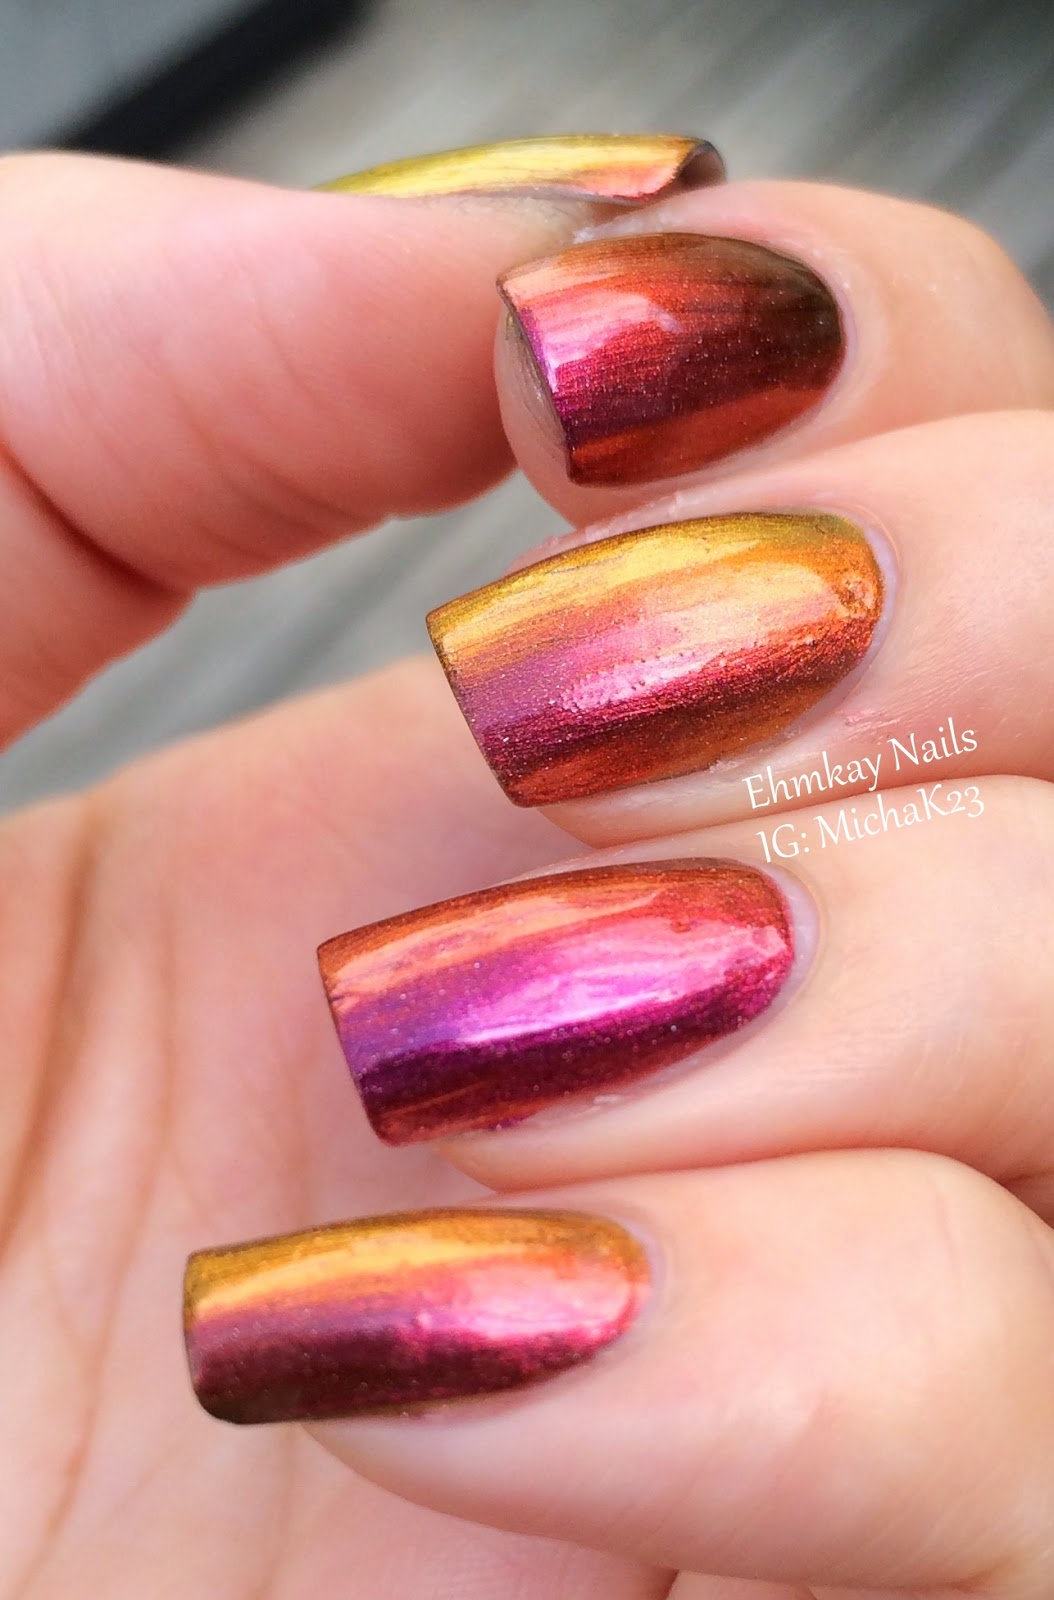 ehmkay nails: Colors by Llarowe Show Me! Collection